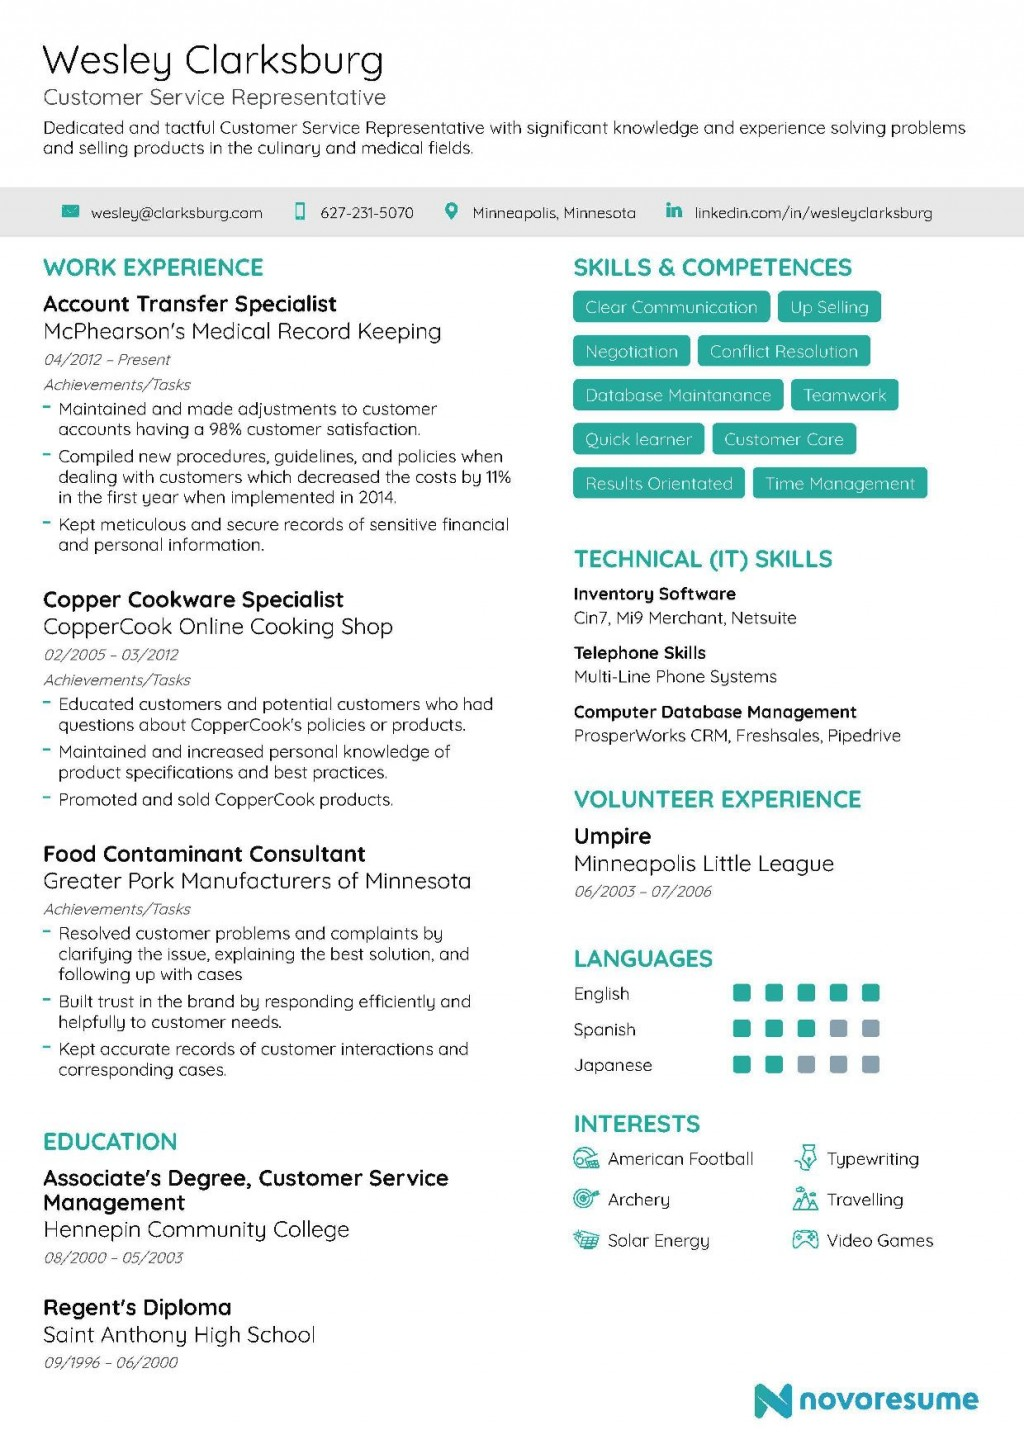 006 Imposing Customer Service Resume Template Image  Templates 2018 Word CvLarge